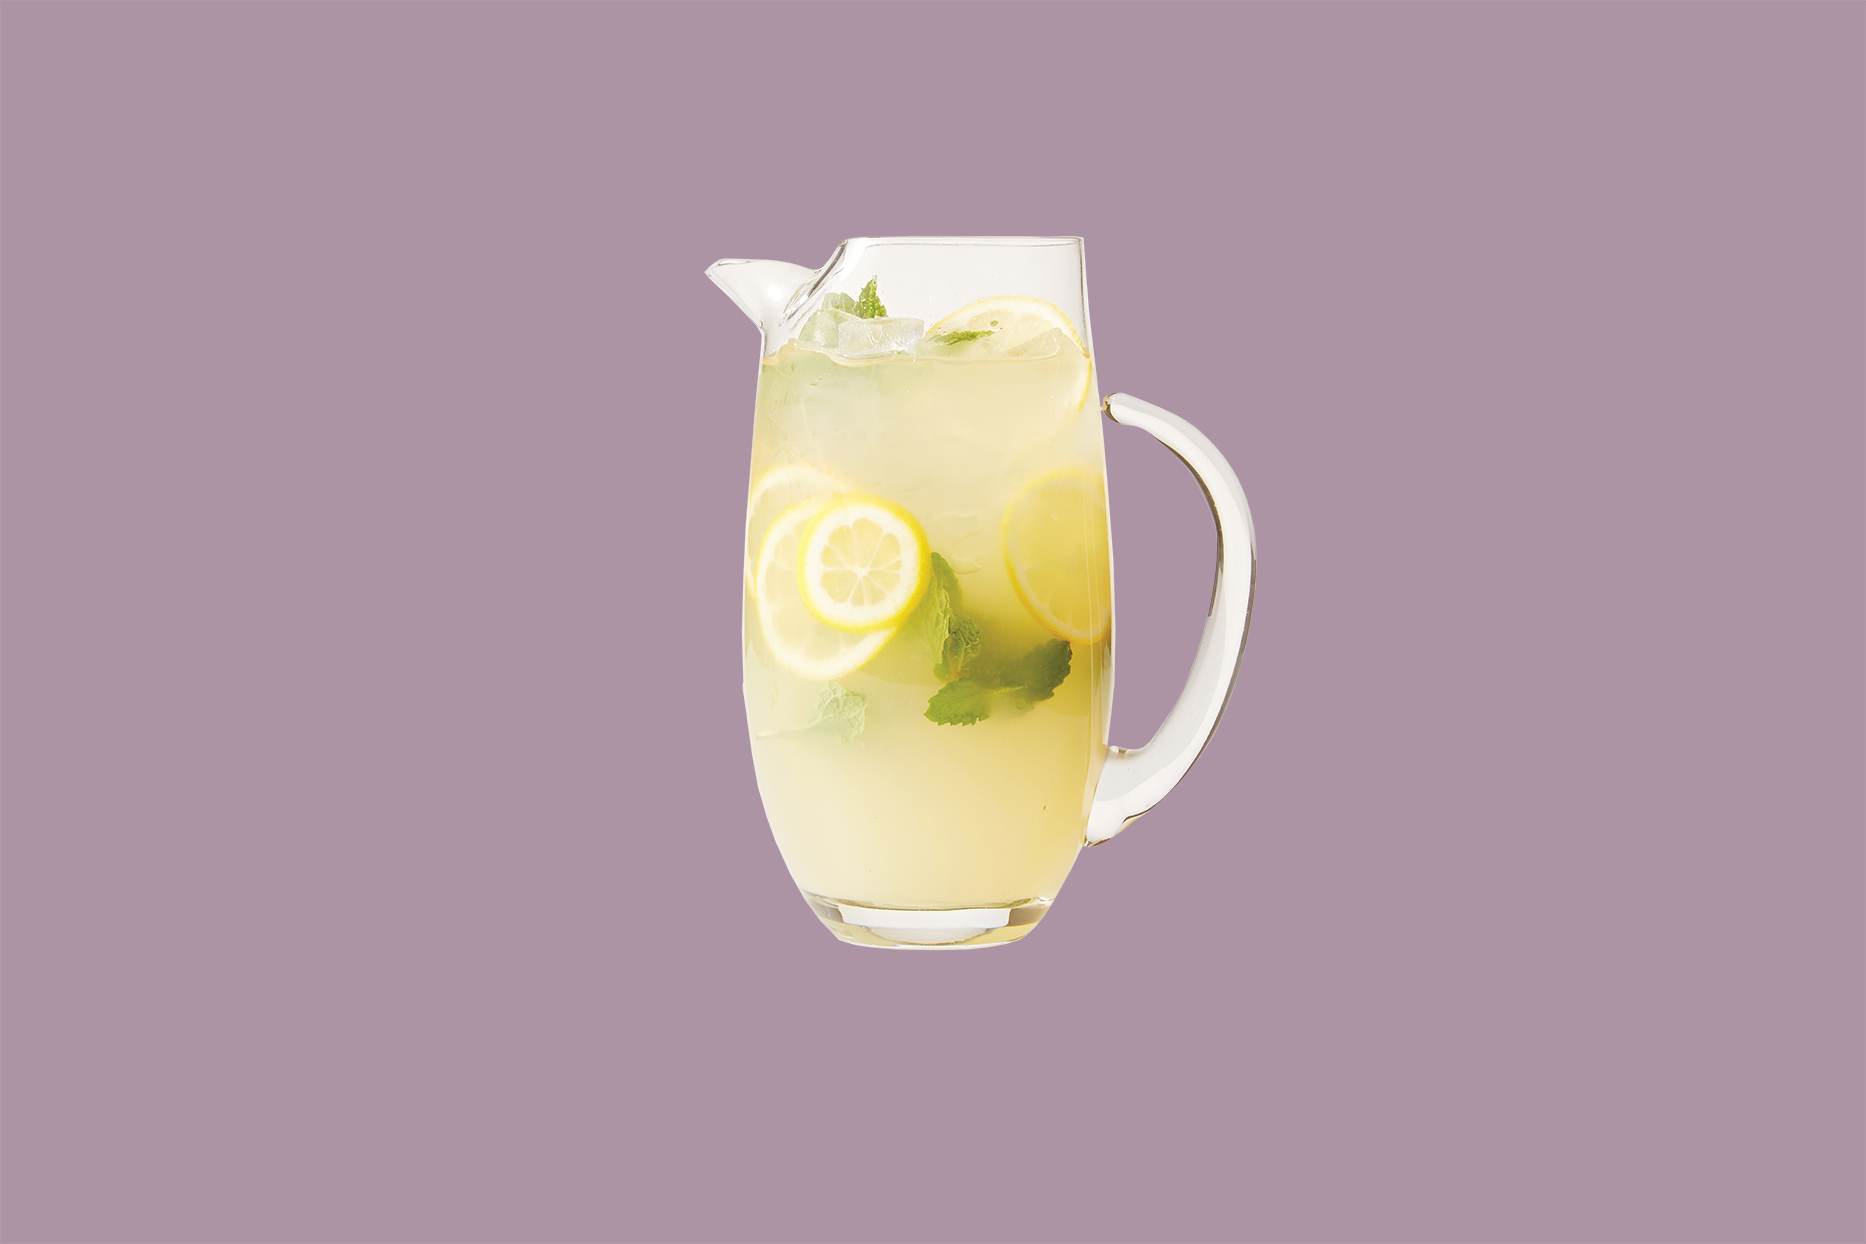 glass pitcher of lemonade with mint leaves and sliced lemons